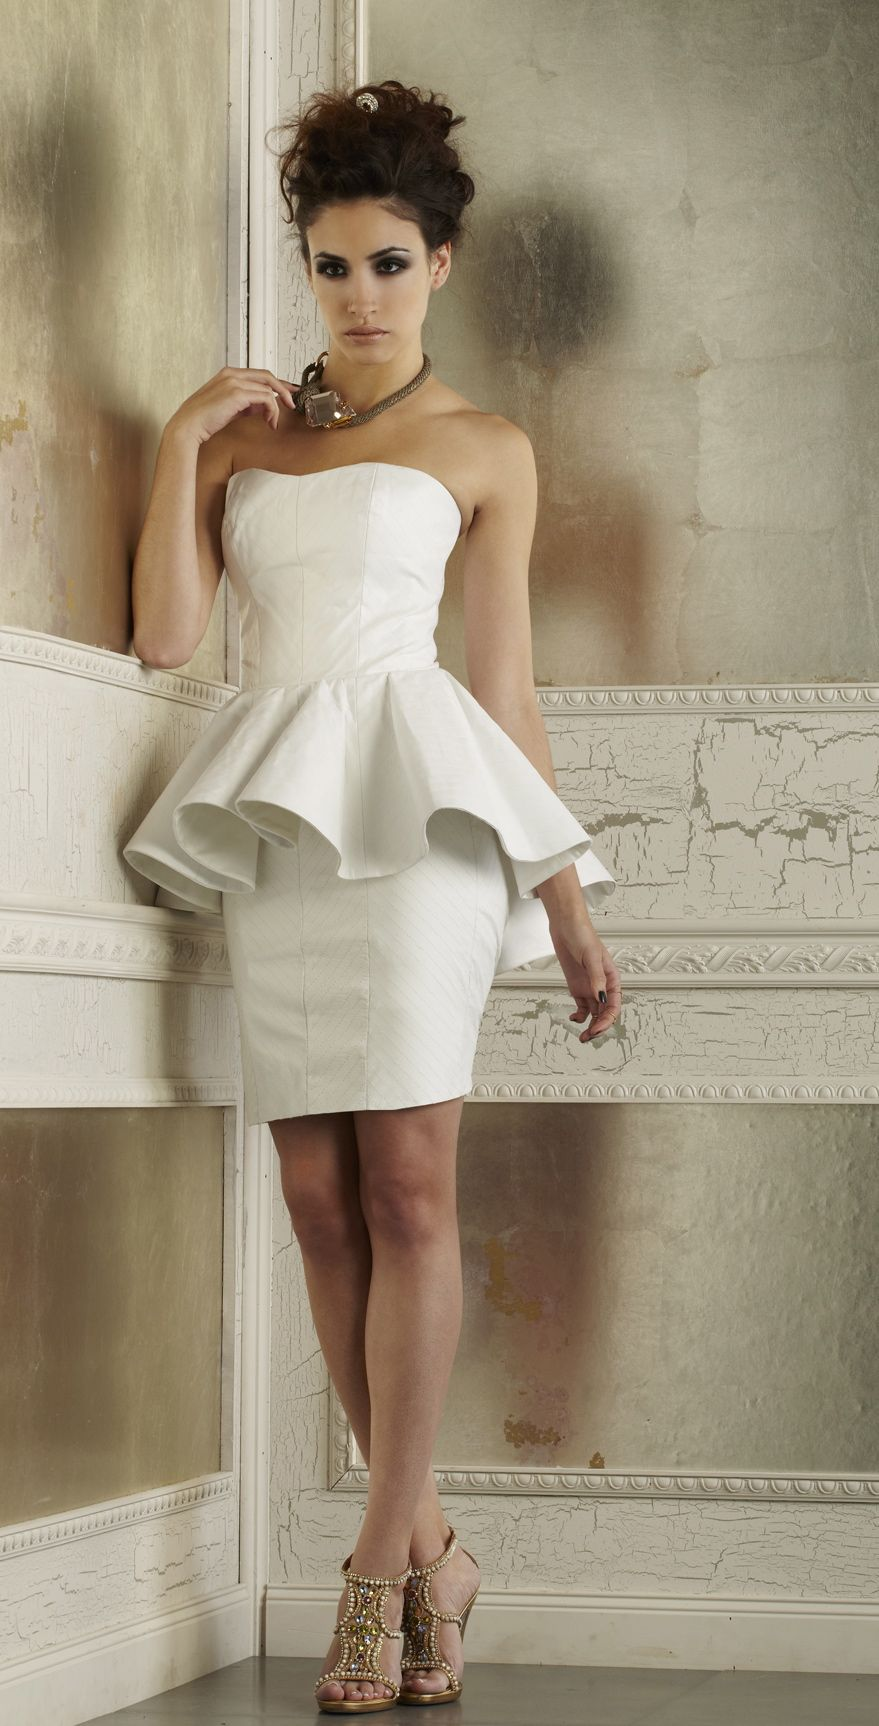 Edgy wedding dresses  The Madison Corset and The Logan Skirt by Della Giovanna lla